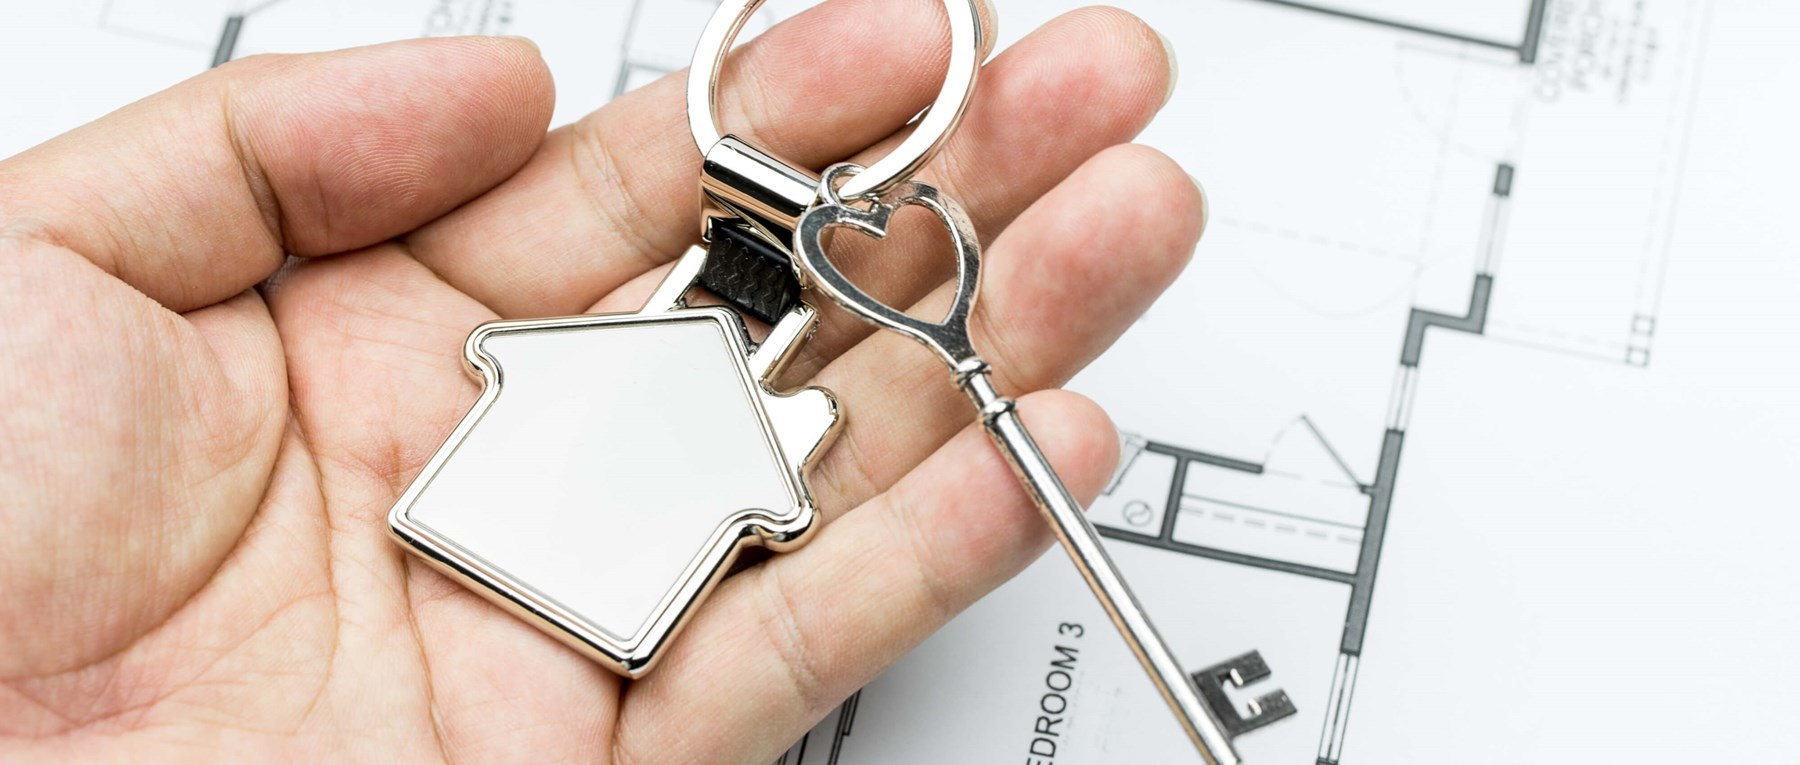 A silver key with a house key ring